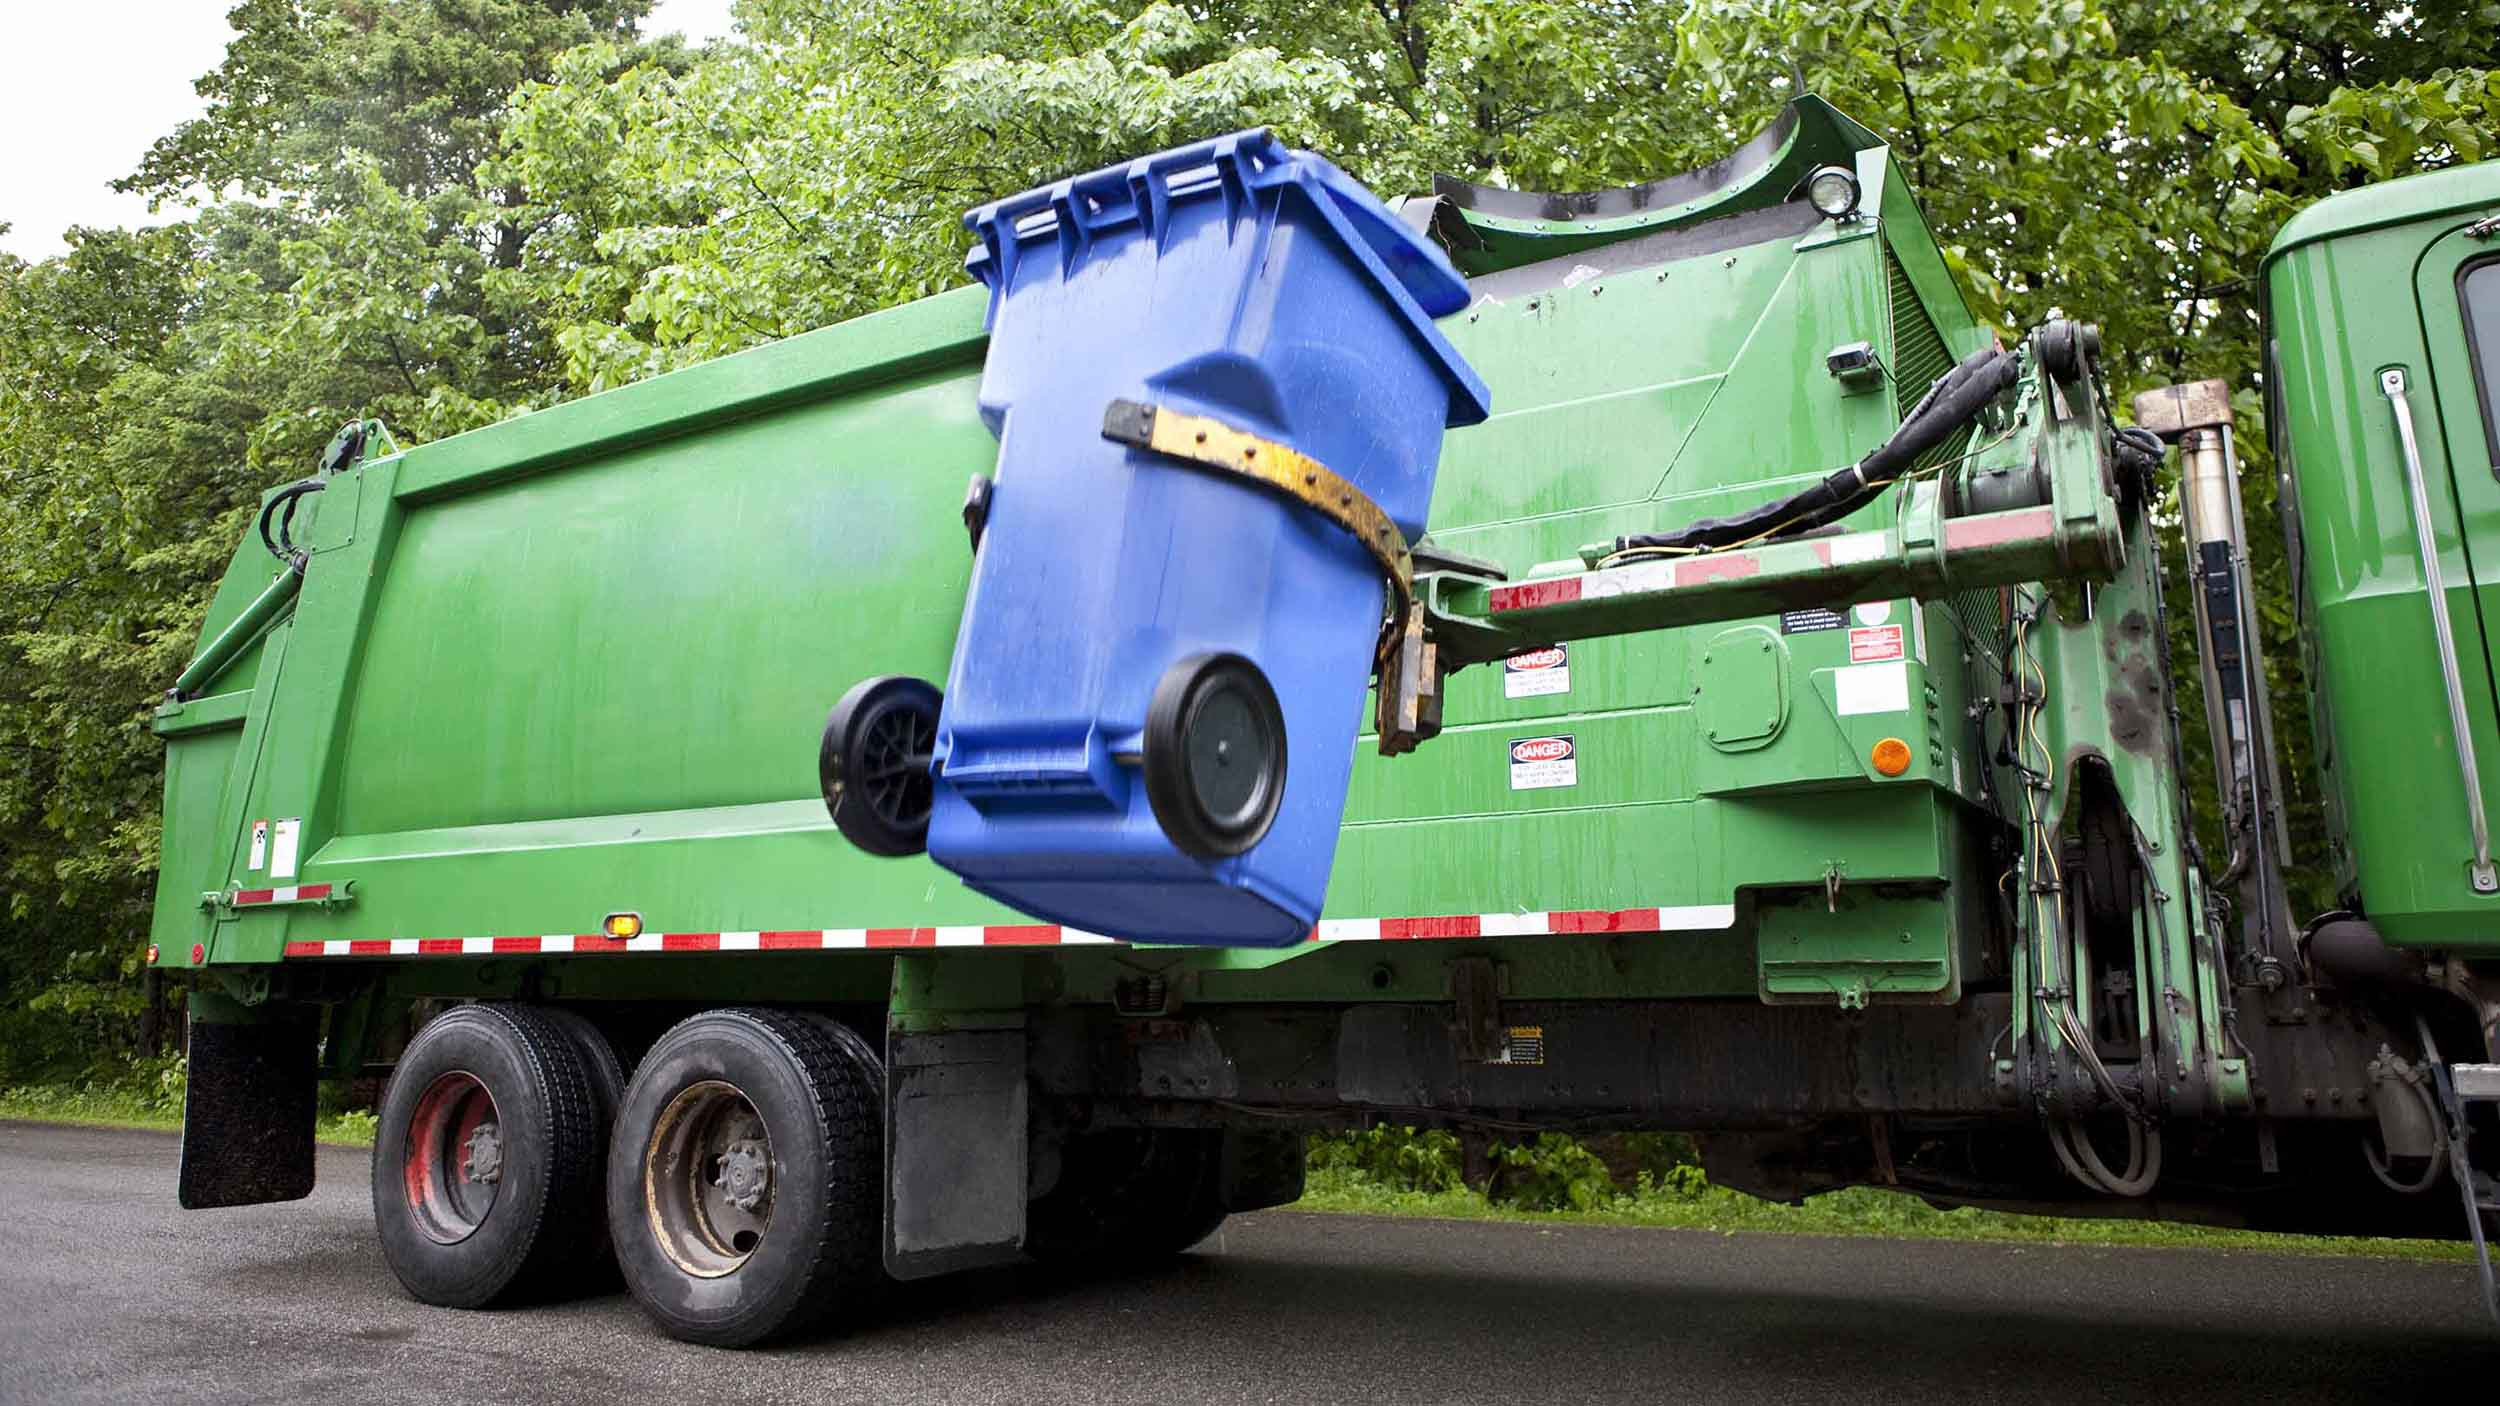 Green garbage truck lifting a blue dumpster